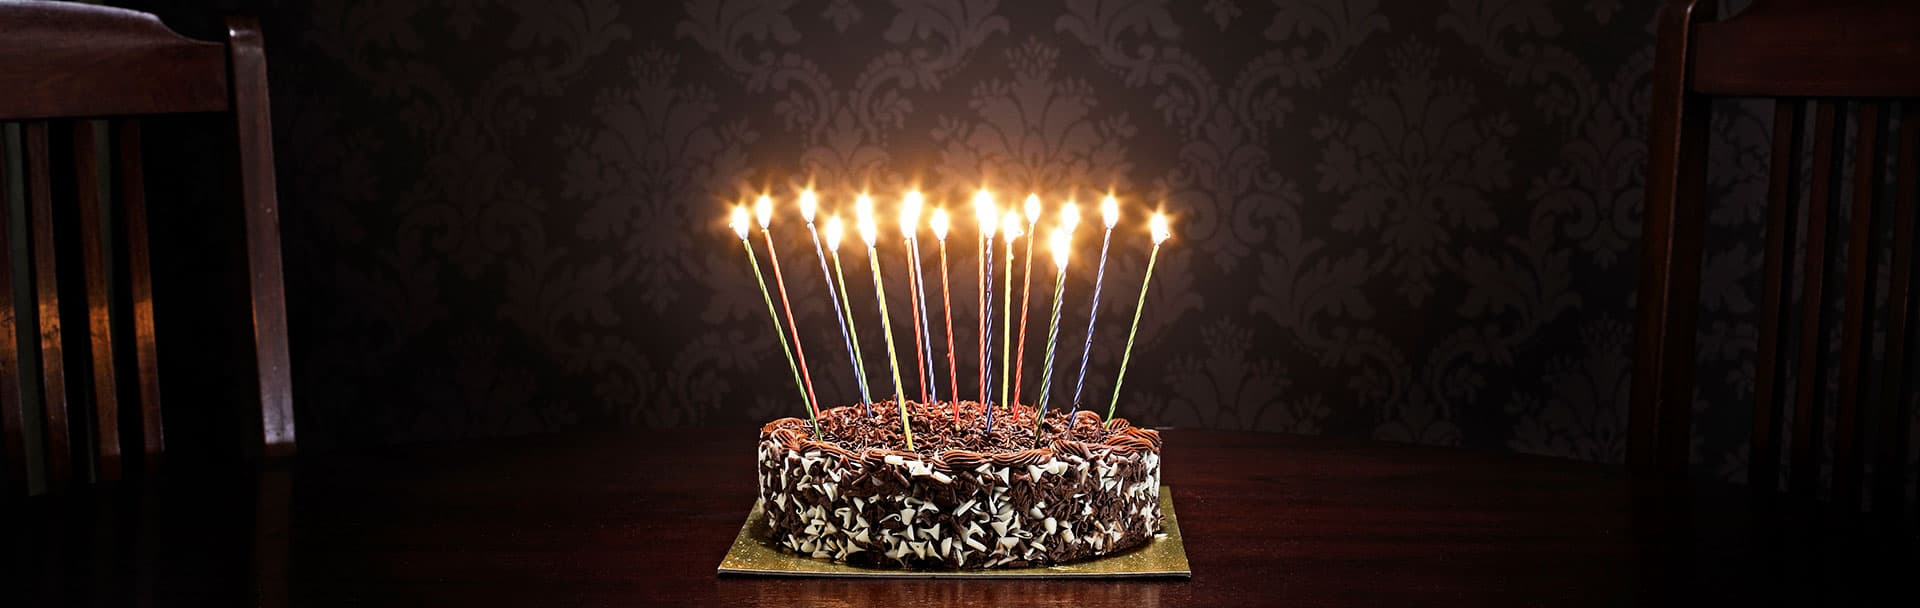 Birthday cake with lit candles.